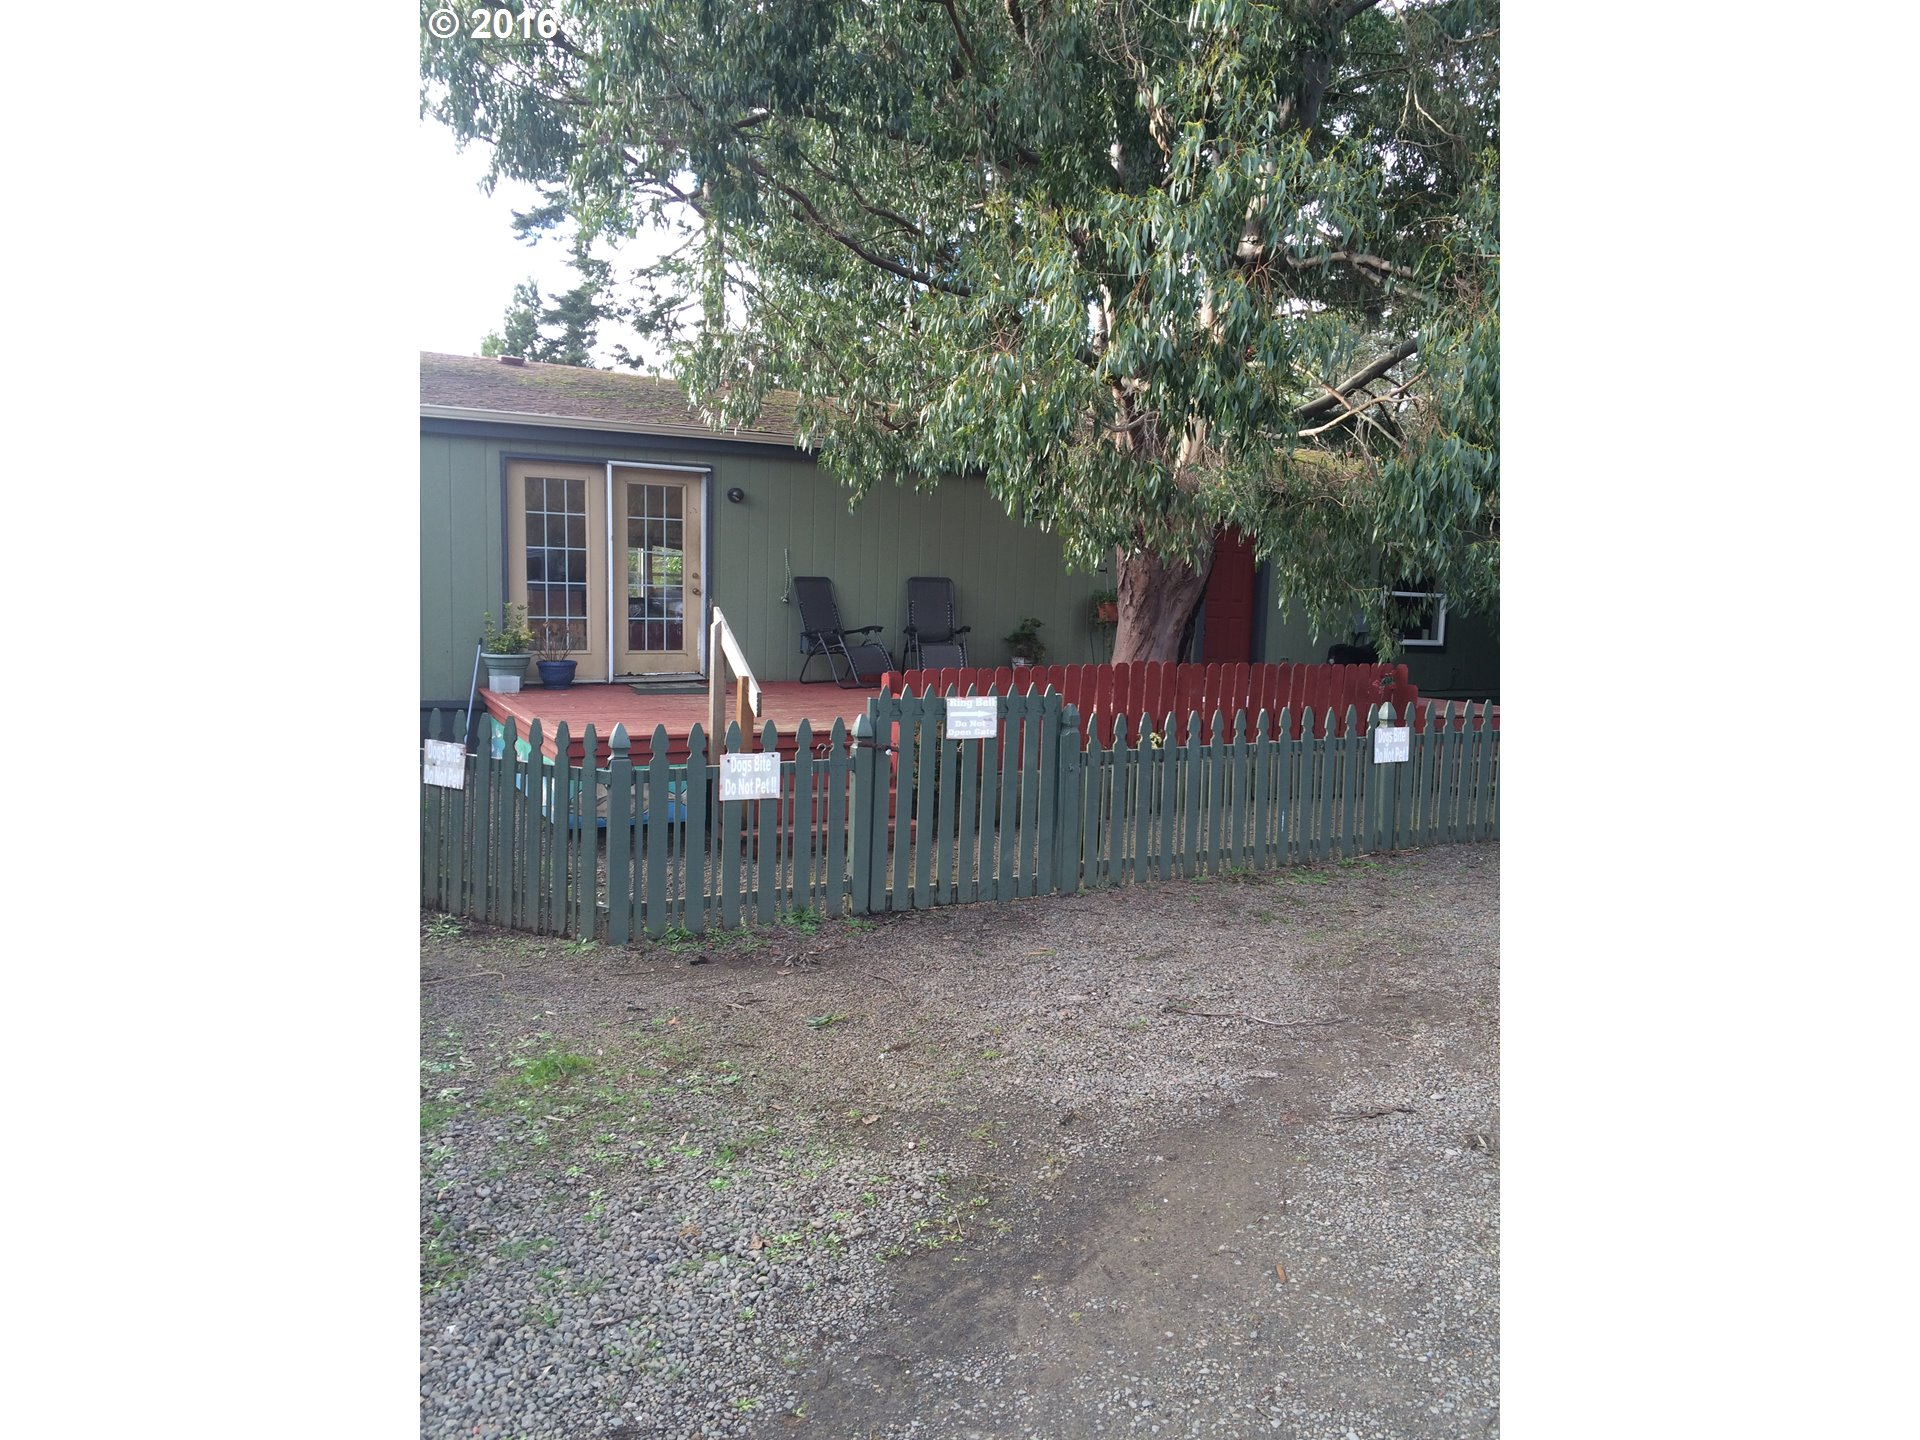 85208 101 HWY, Florence, OR 97439